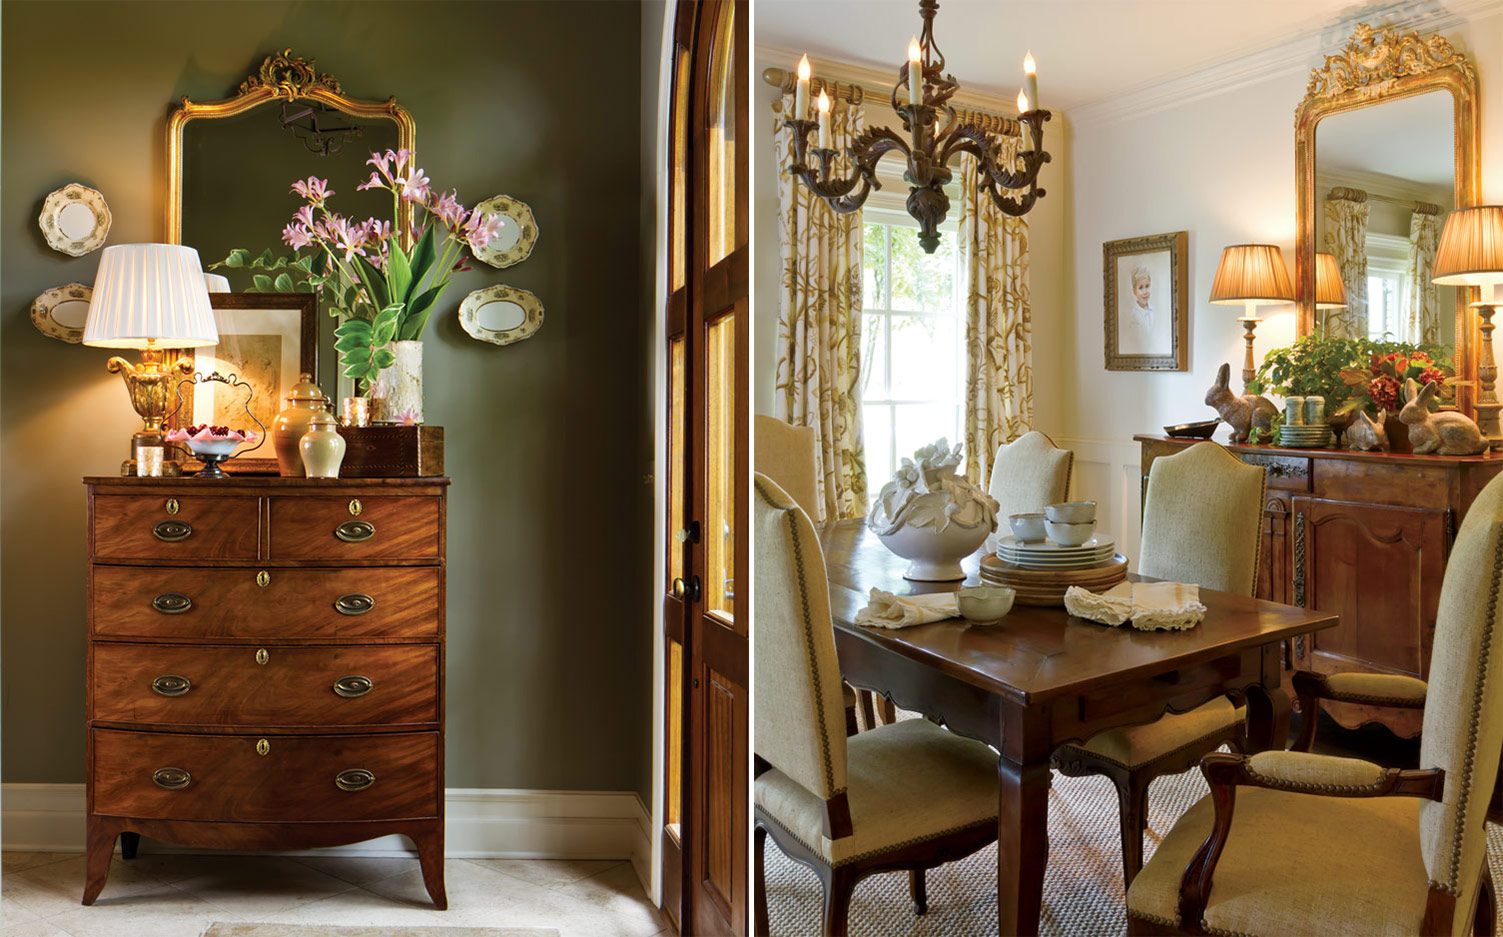 Designer sally may on the classical southern home for Home decor interior design